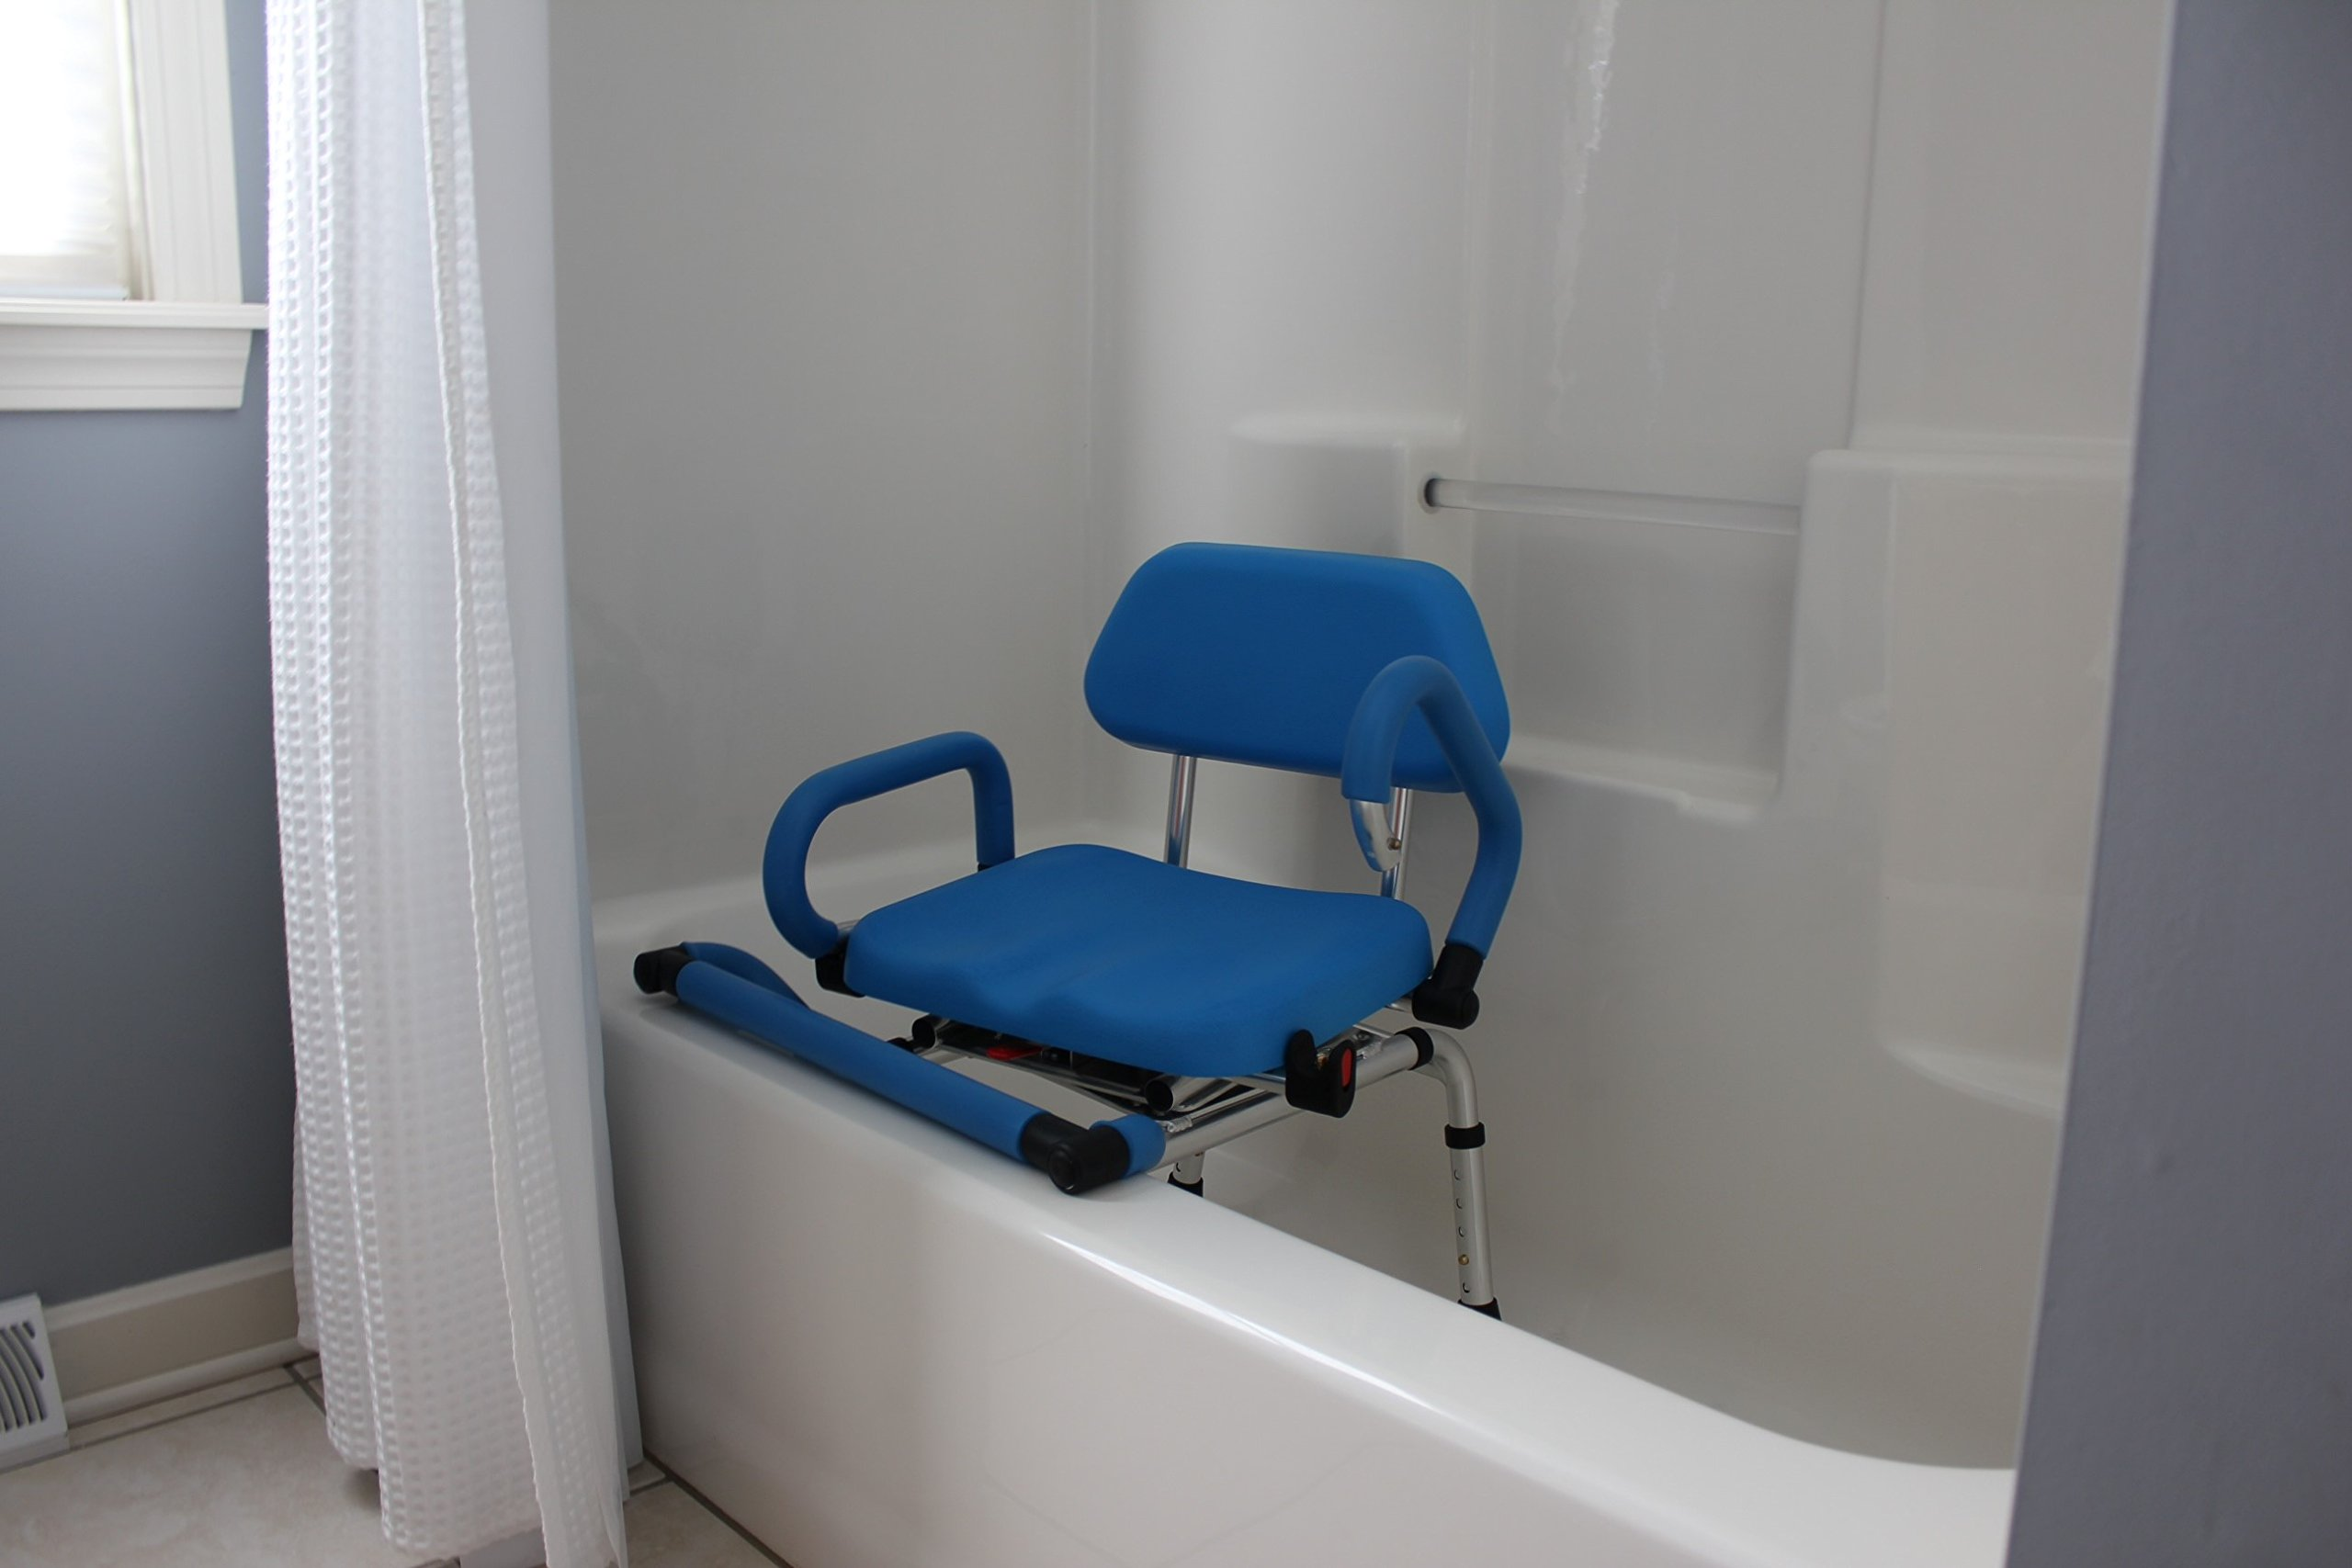 Platinum Health Bath and Shower Chair with Padded Swivel Seat by Platinum Health (Image #4)